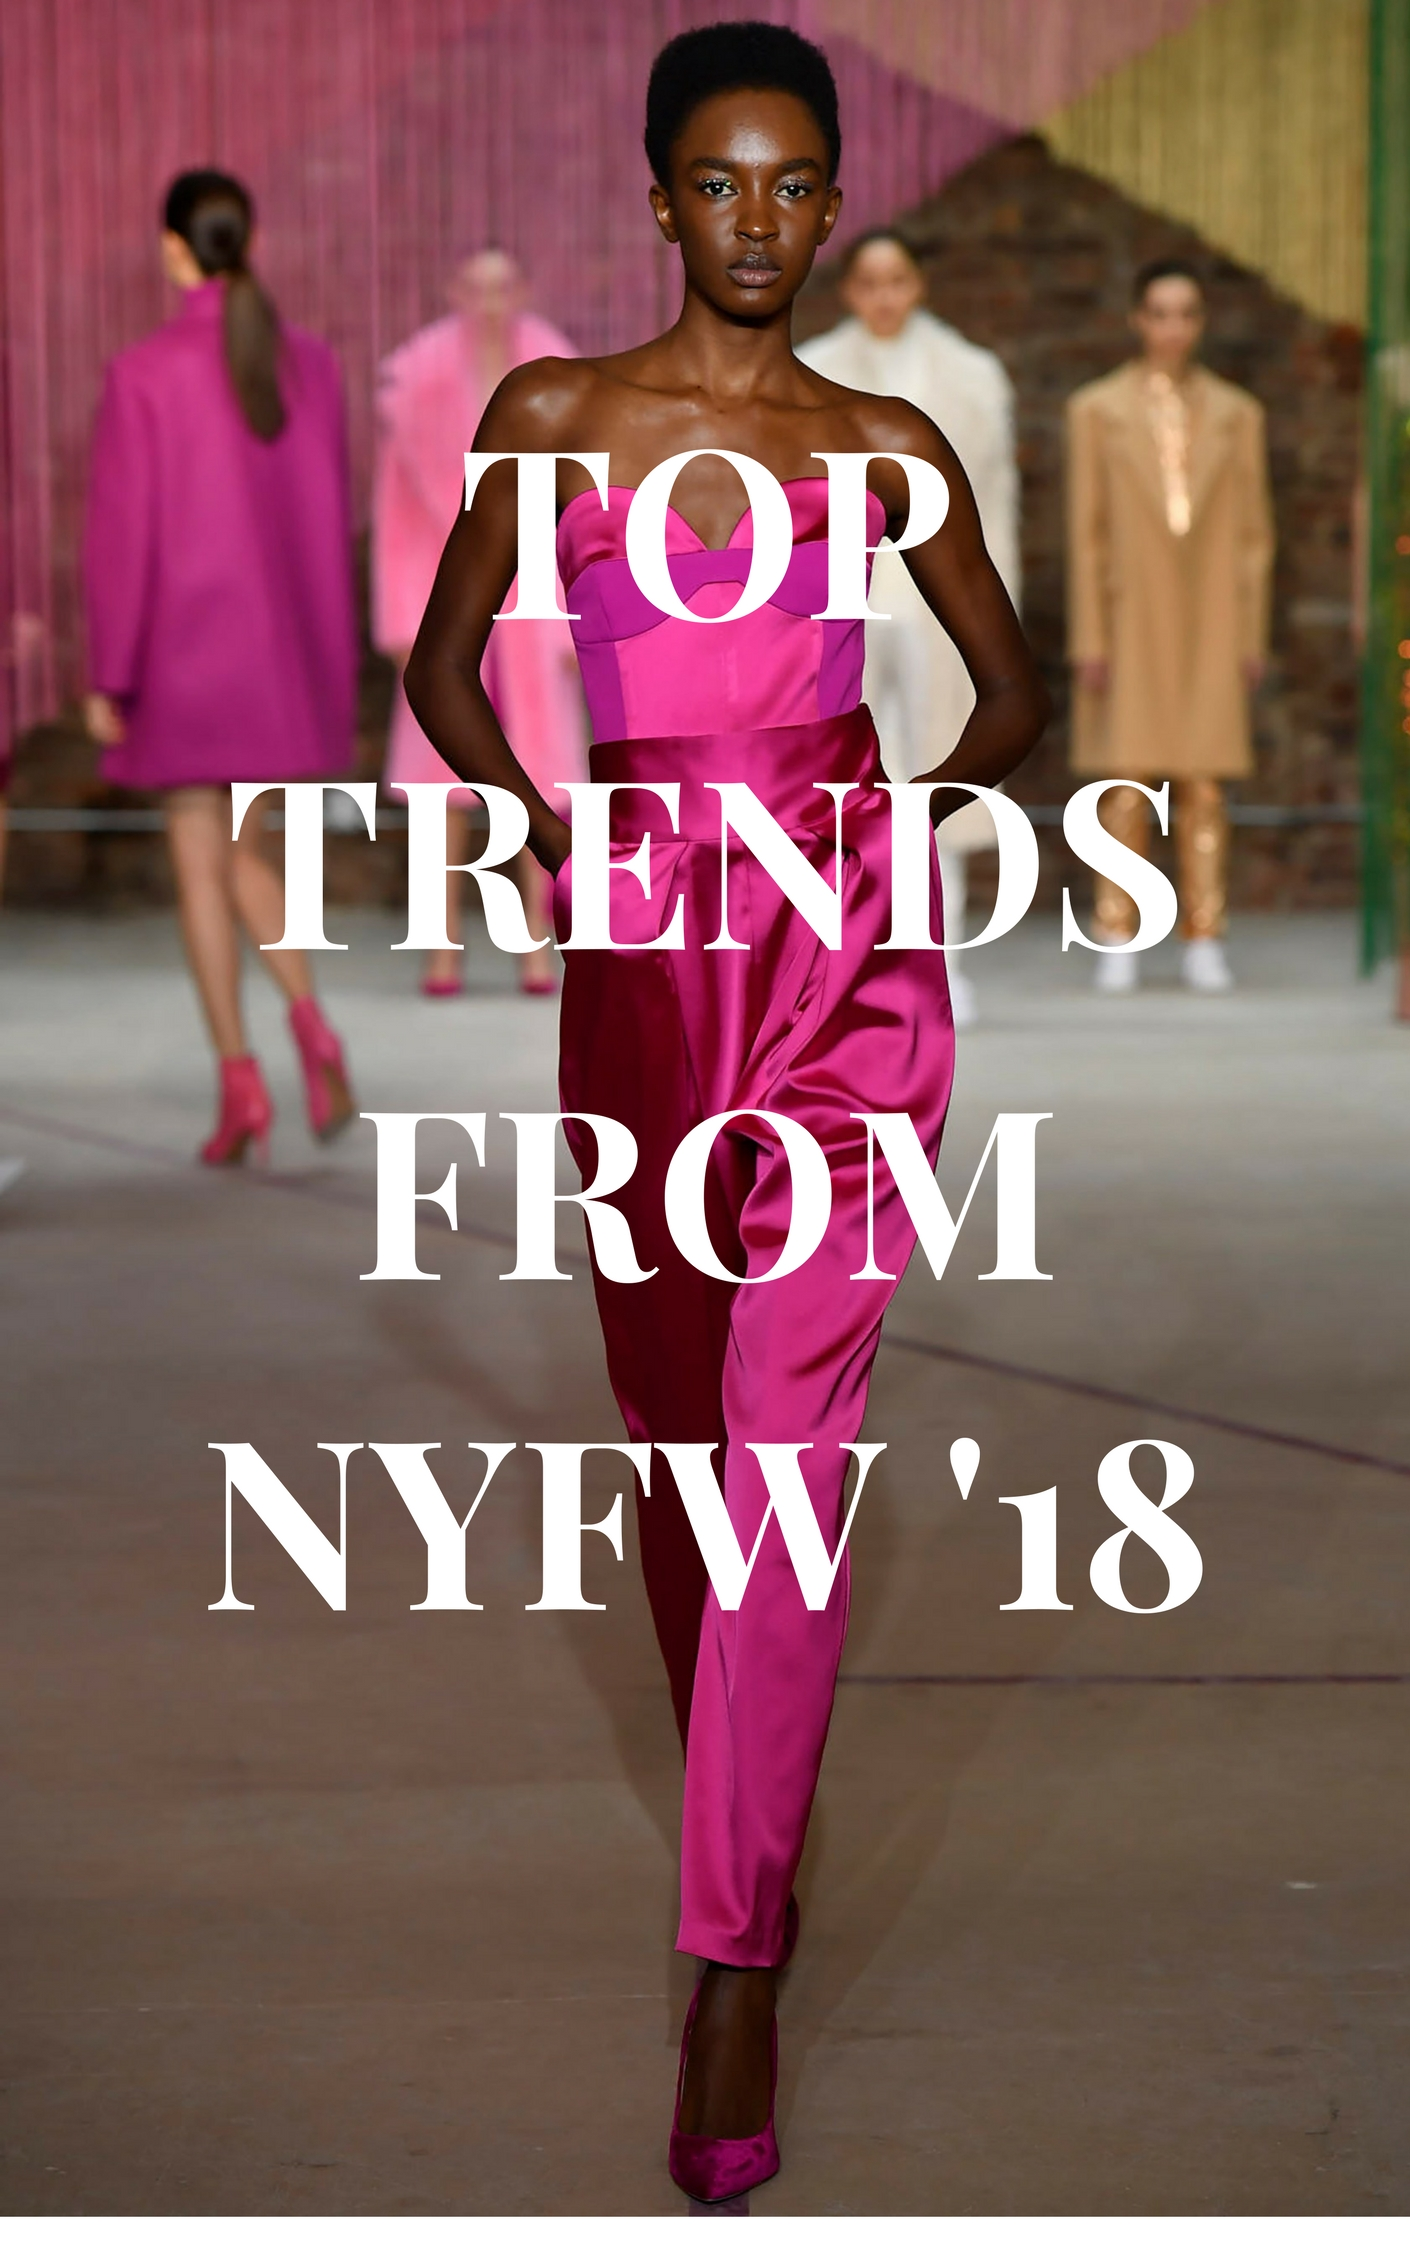 TOP TRENDS FROM NYFW '18.jpg